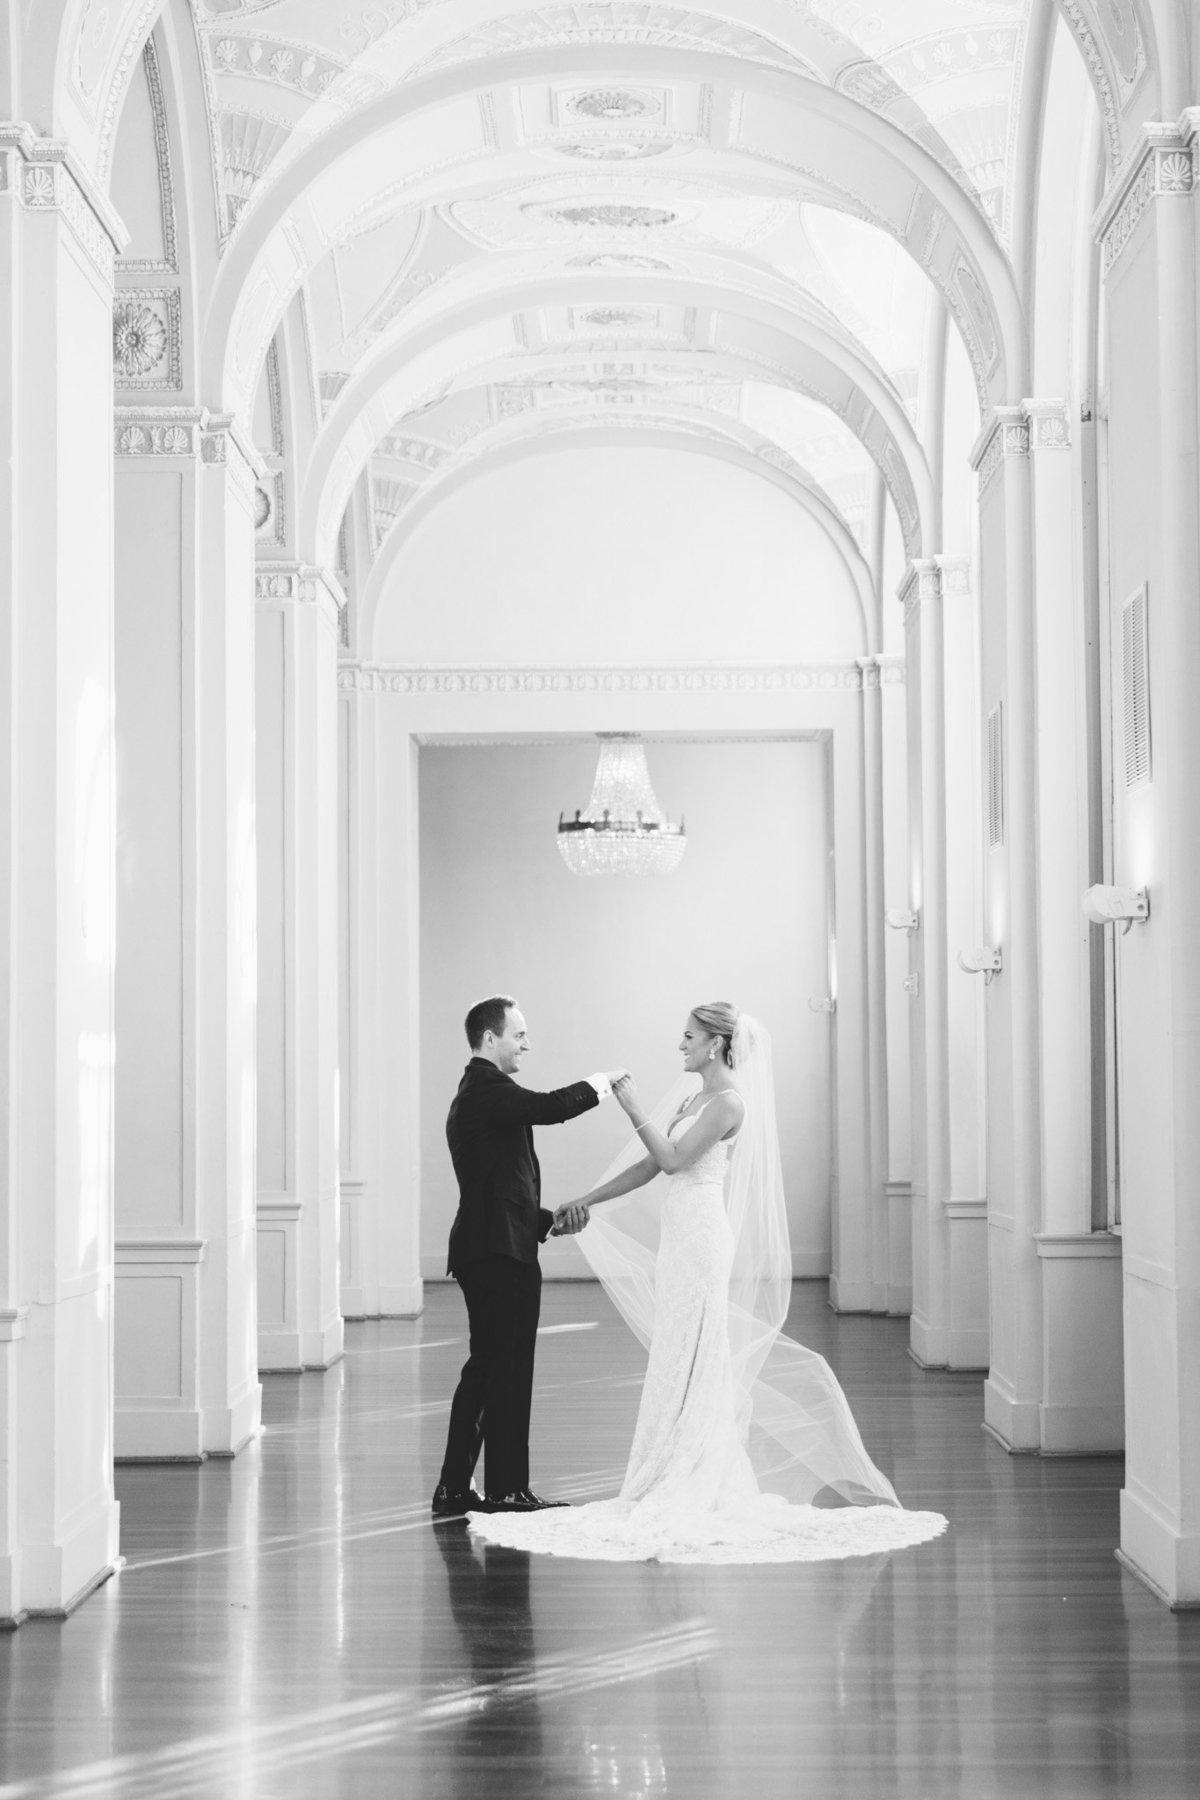 Dance like nobody is watching.  That's what Jack + Tracey did after their emotional first look at the Biltmore Ballrooms in Atlanta, GA.  Photo by Rebecca Cerasani.